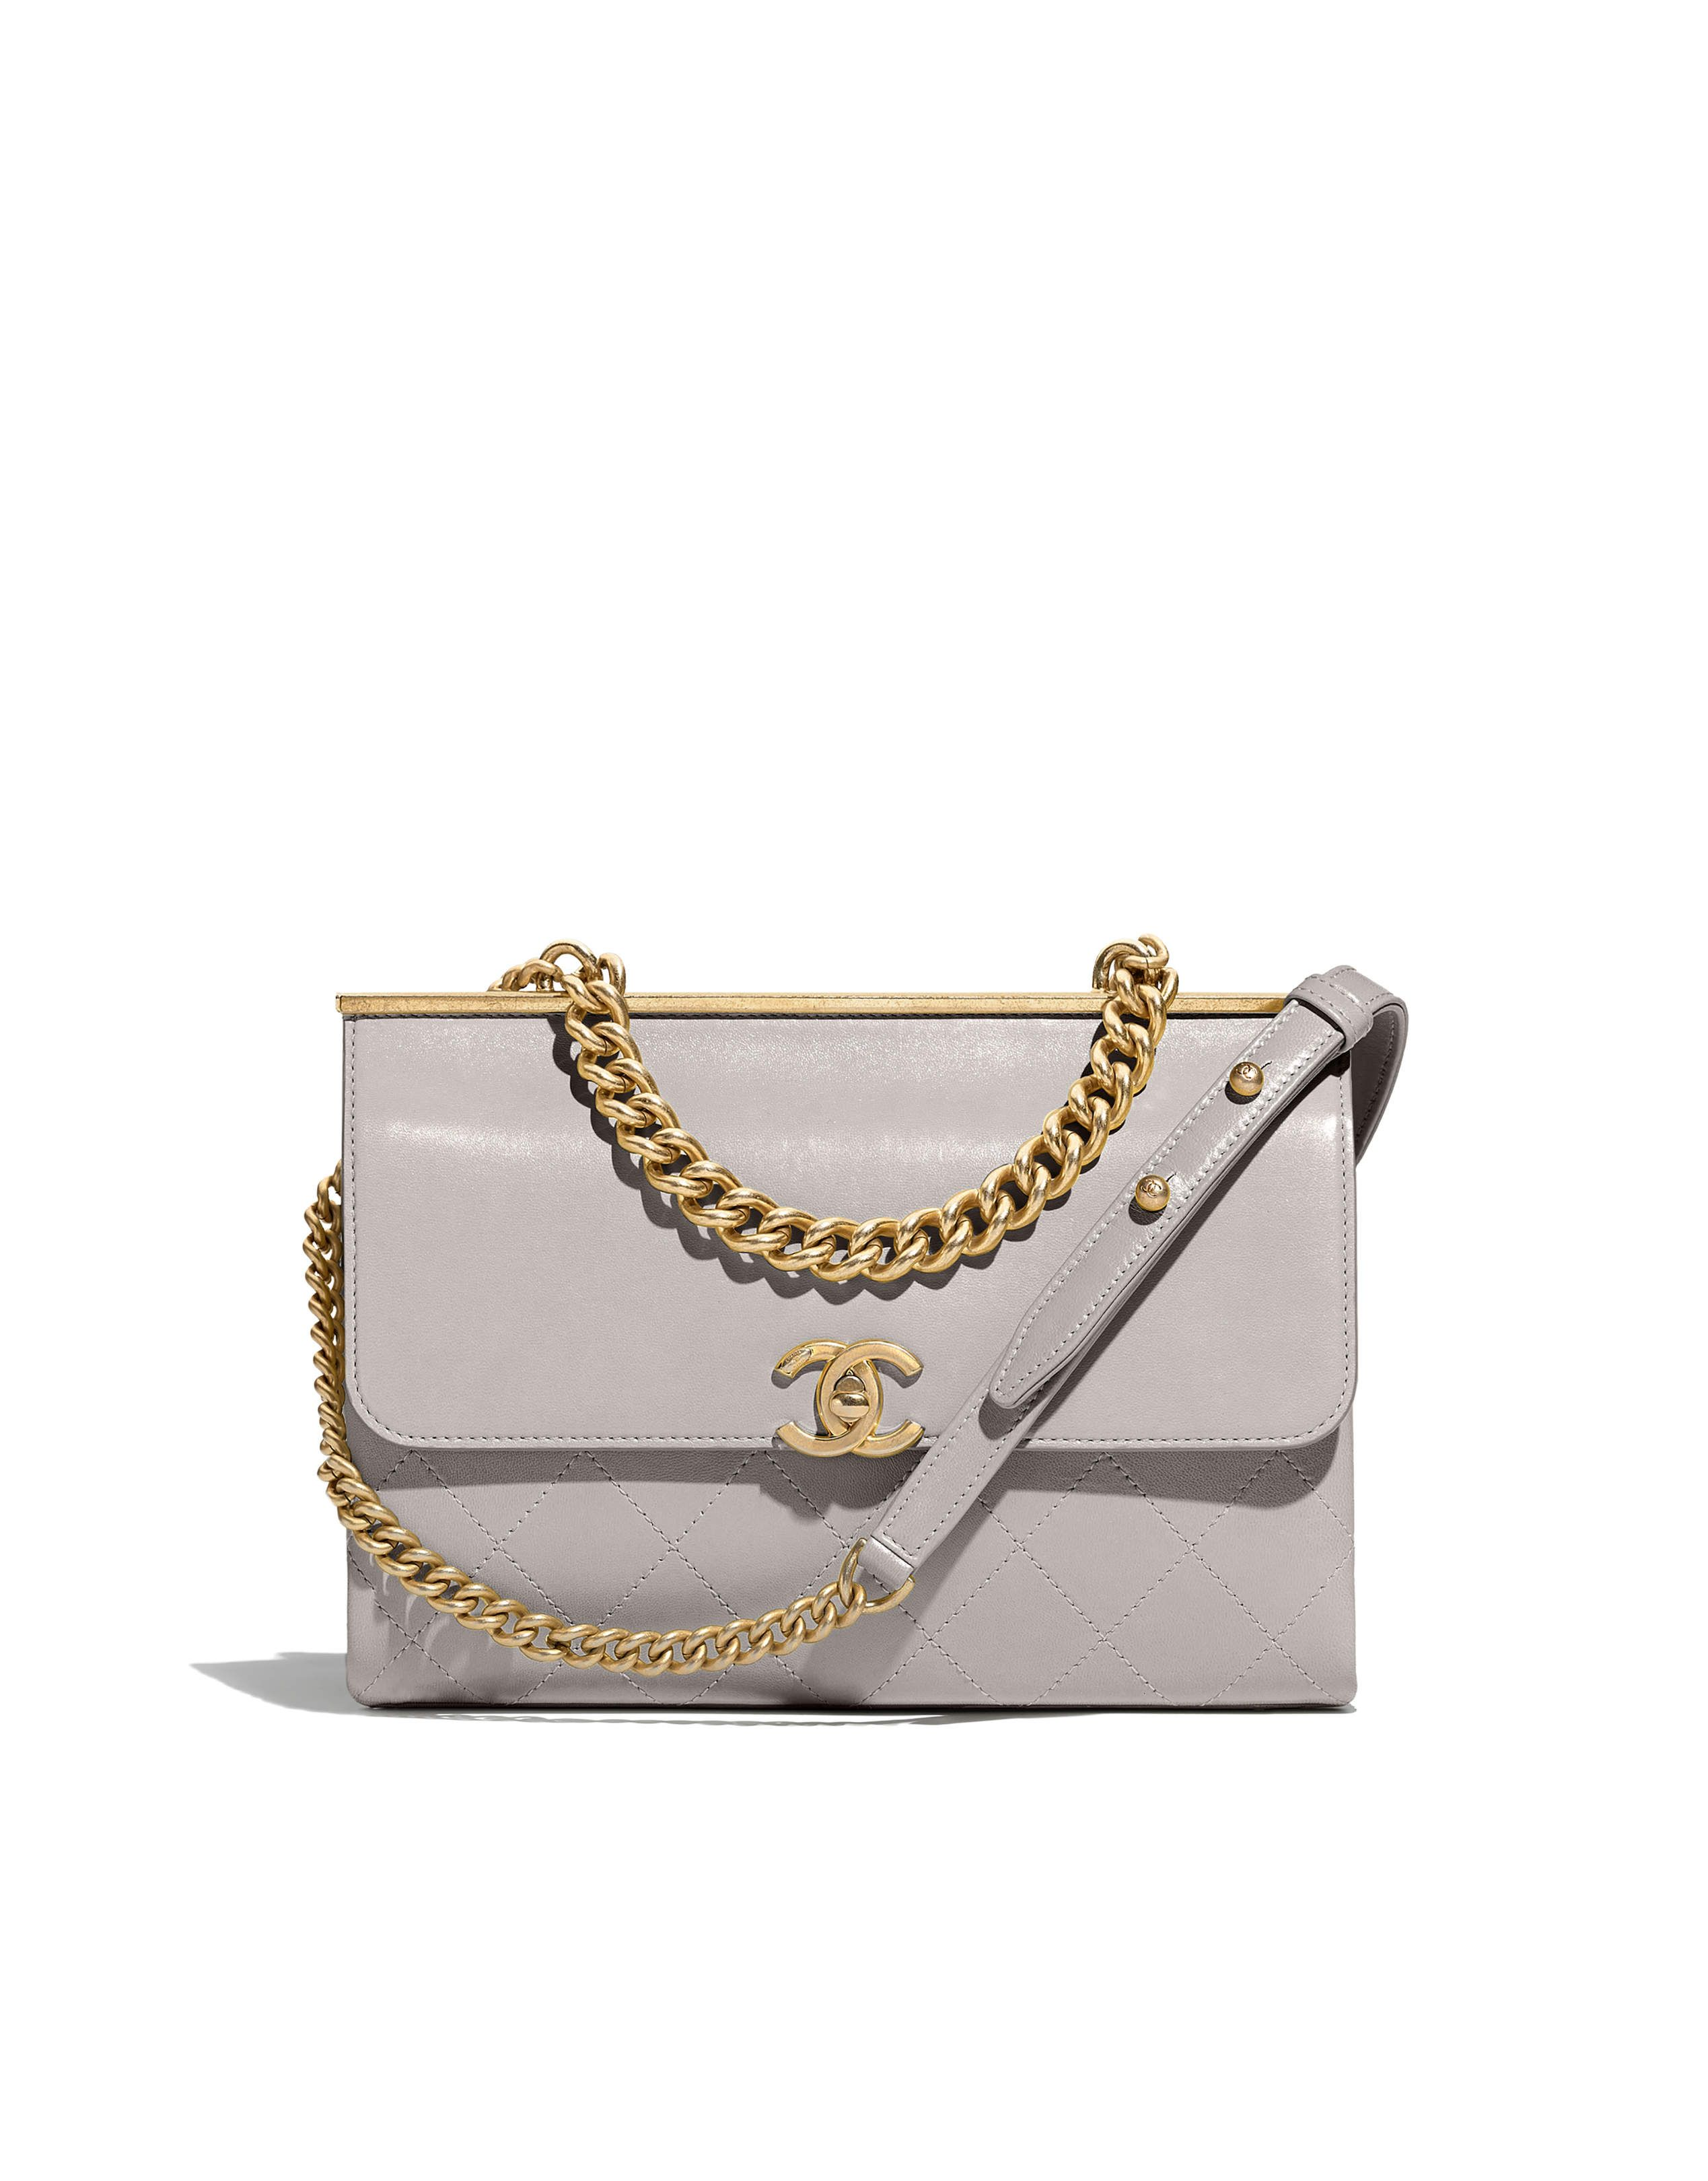 c3ba38f76c17 The Spring-Summer 2018 Pre-Collection Handbags collection on the CHANEL  official website